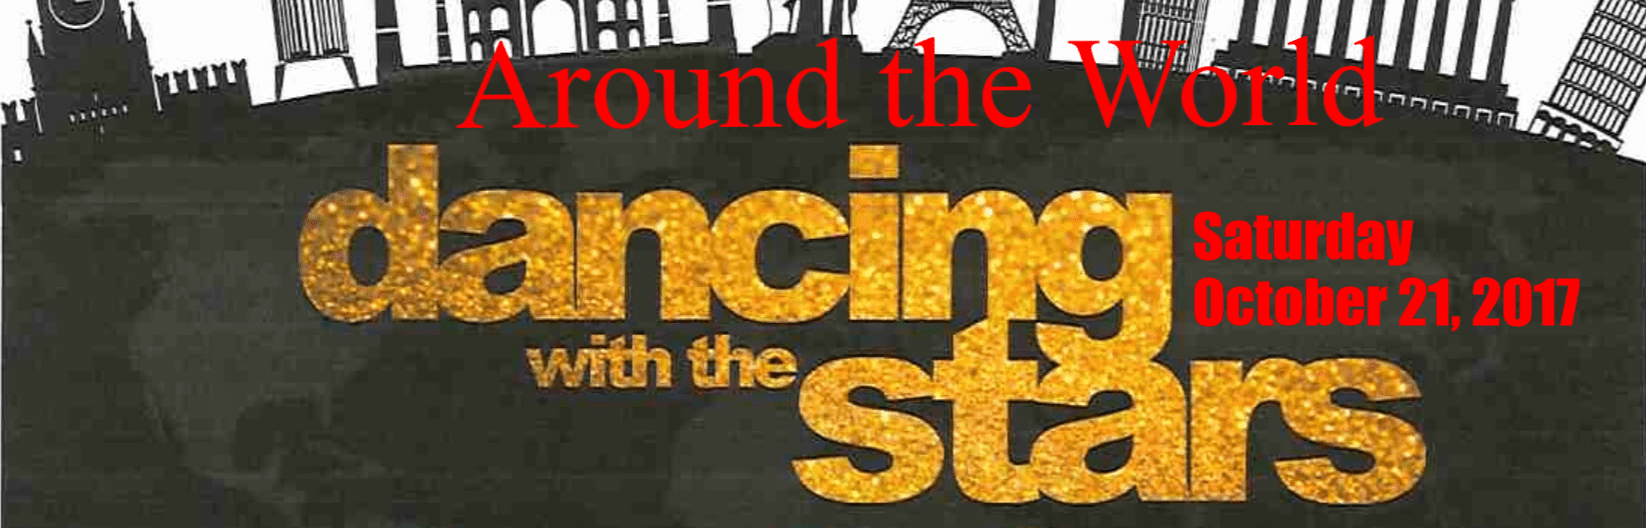 DANCING WITH THE STARS, THE GOOD SHEPHERD WAY - AROUND THE WORLD